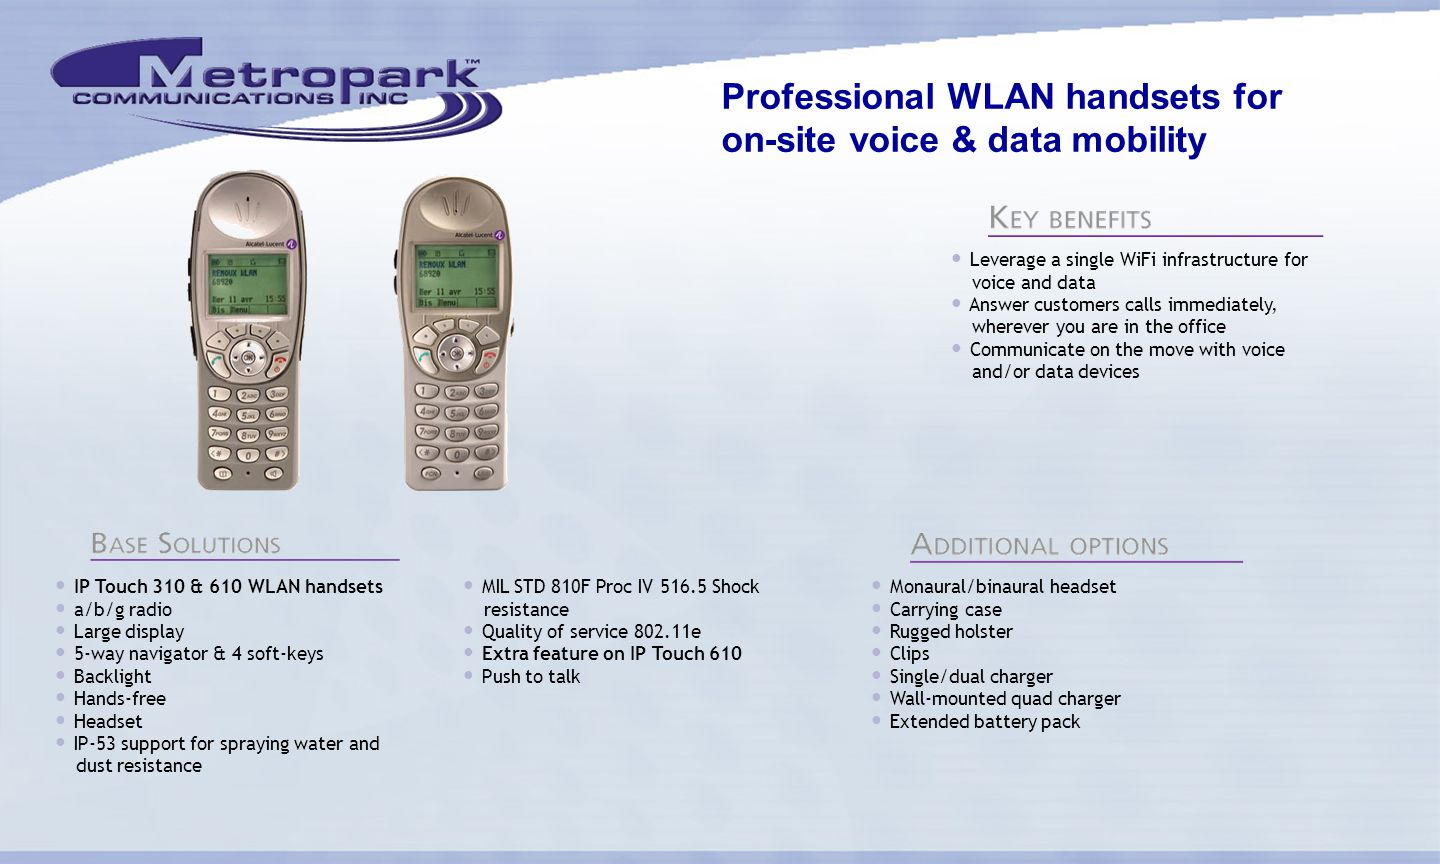 Professional WLAN handsets for on-site voice & data mobility IP Touch 310 & 610 WLAN handsets a/b/g radio Large display 5-way navigator & 4 soft-keys Backlight Hands-free Headset IP-53 support for spraying water and dust resistance MIL STD 810F Proc IV 516.5 Shock resistance Quality of service 802.11e Extra feature on IP Touch 610 Push to talk Monaural/binaural headset Carrying case Rugged holster Clips Single/dual charger Wall-mounted quad charger Extended battery pack Leverage a single WiFi infrastructure for voice and data Answer customers calls immediately, wherever you are in the office Communicate on the move with voice and/or data devices